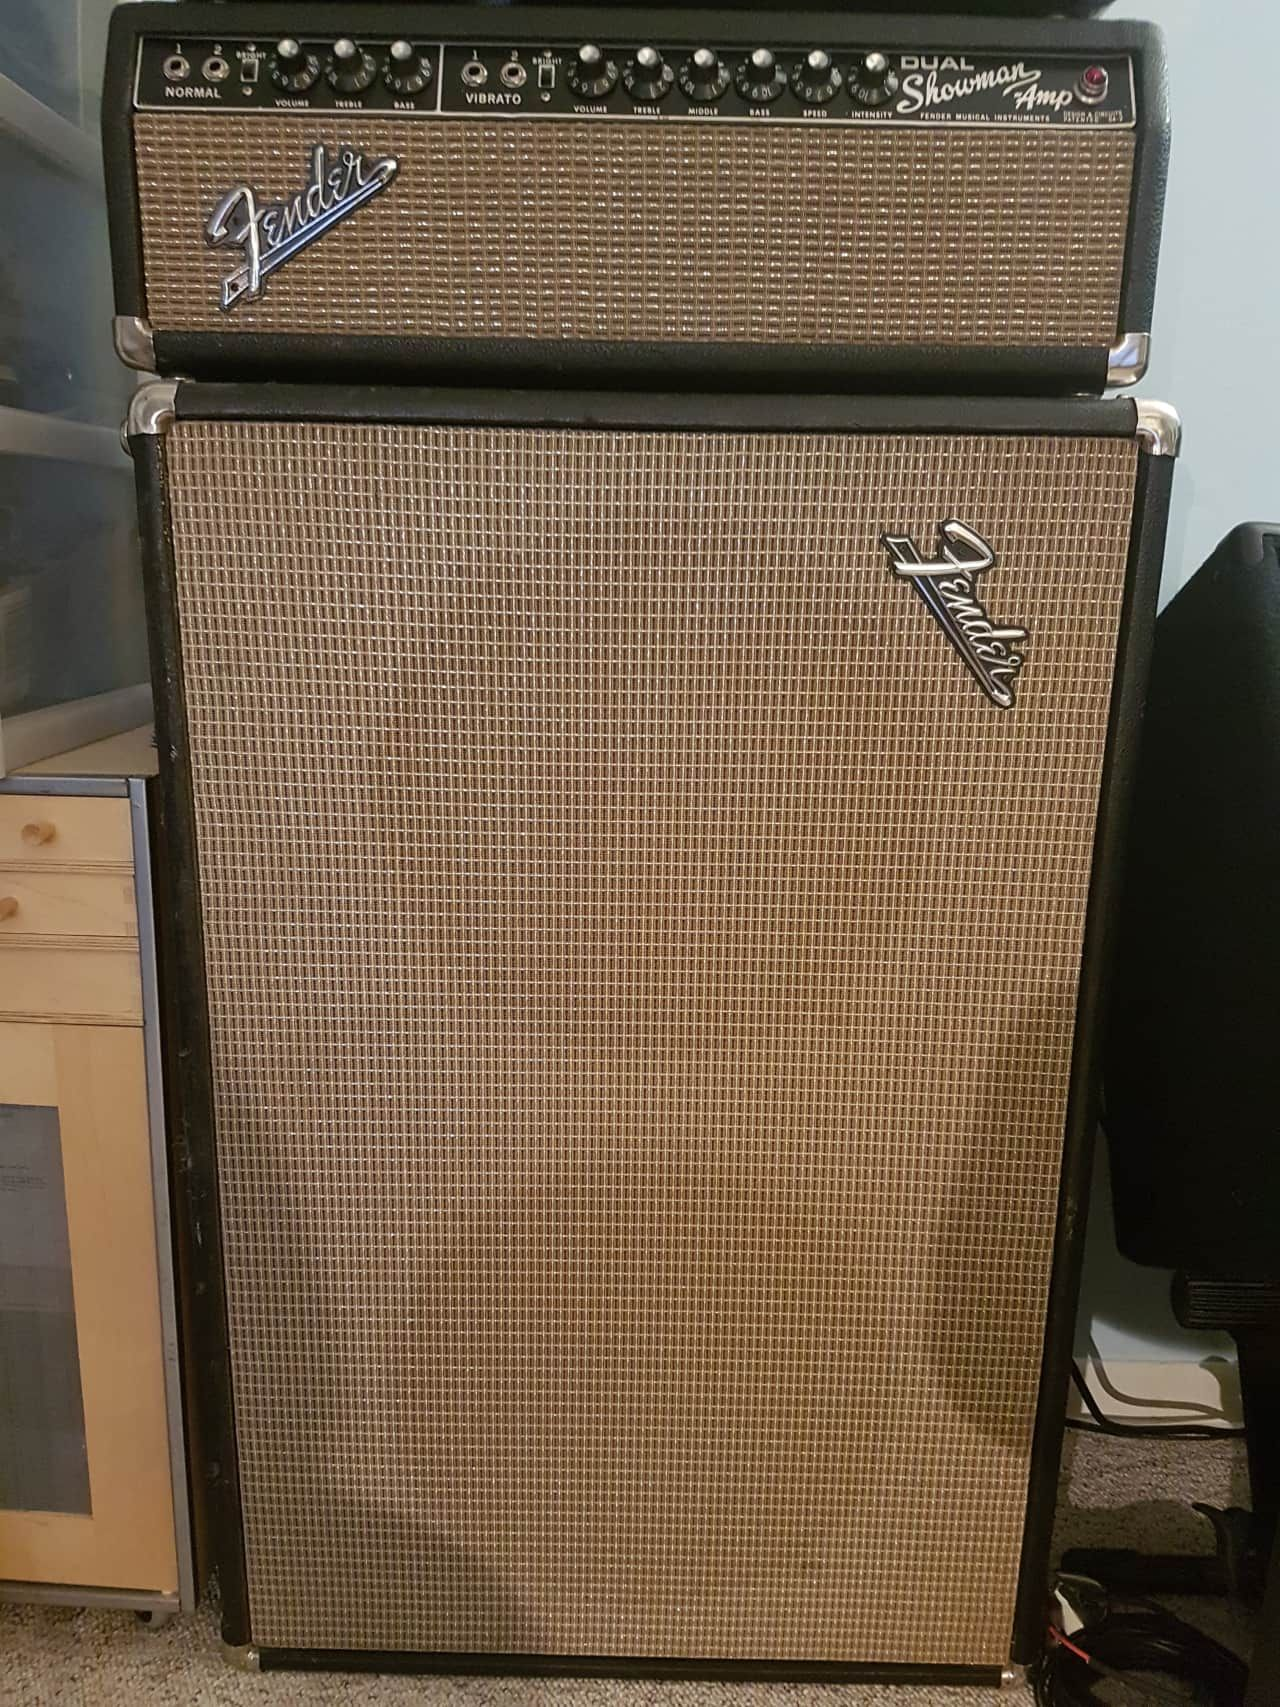 Up for sale is my 1967 Fender Blackface Dual Showman Amp